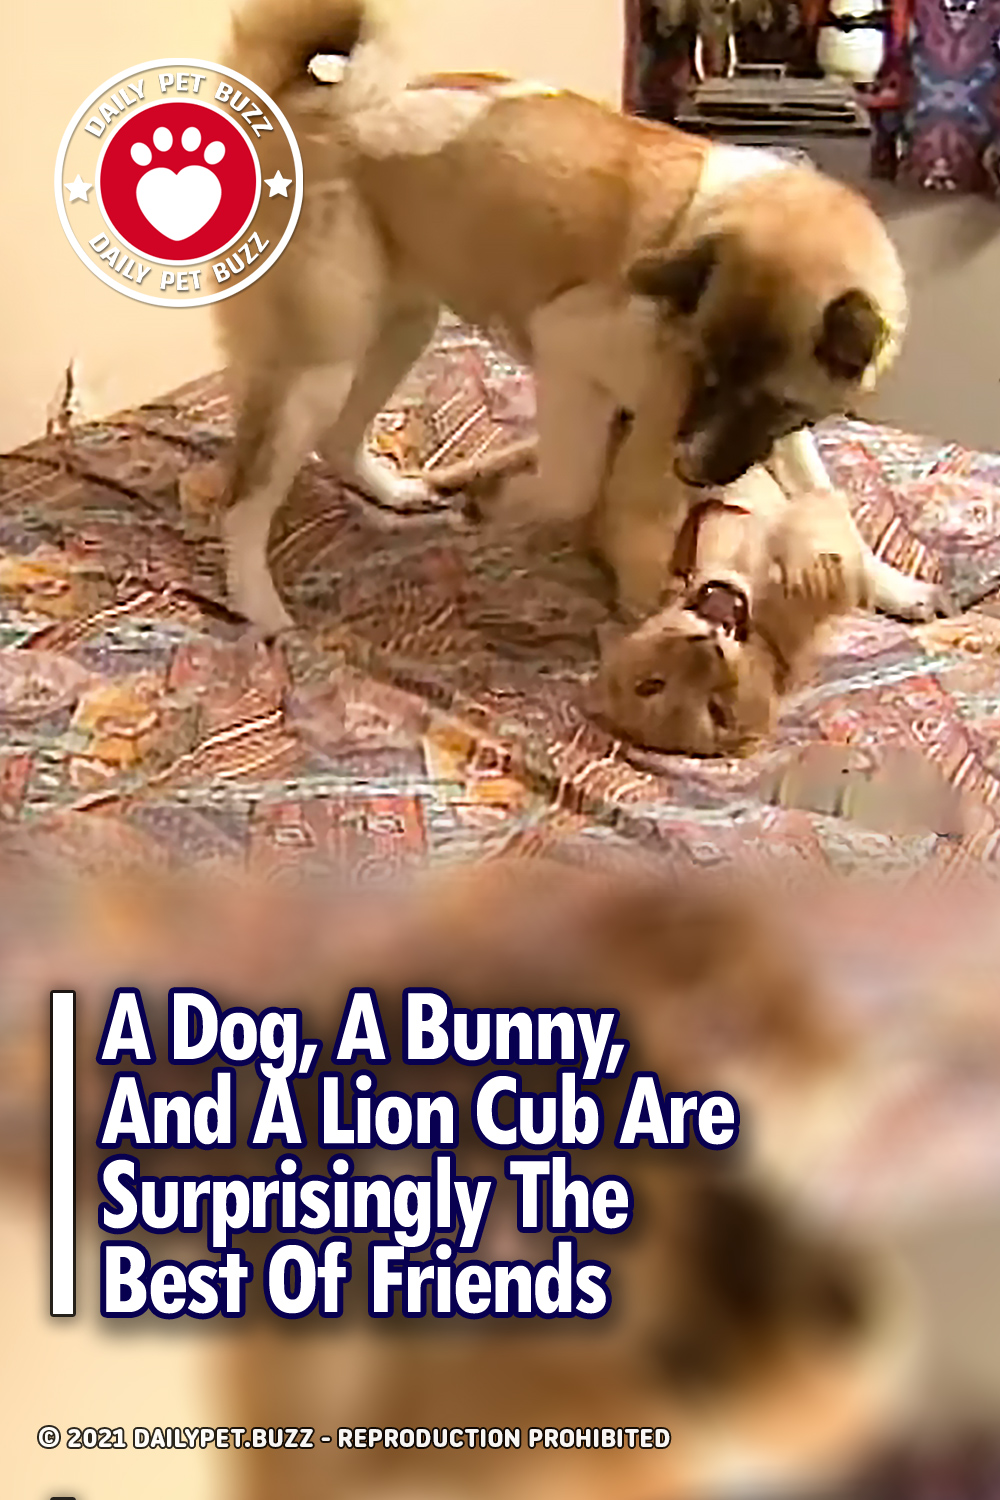 A Dog, A Bunny, And A Lion Cub Are Surprisingly The Best Of Friends